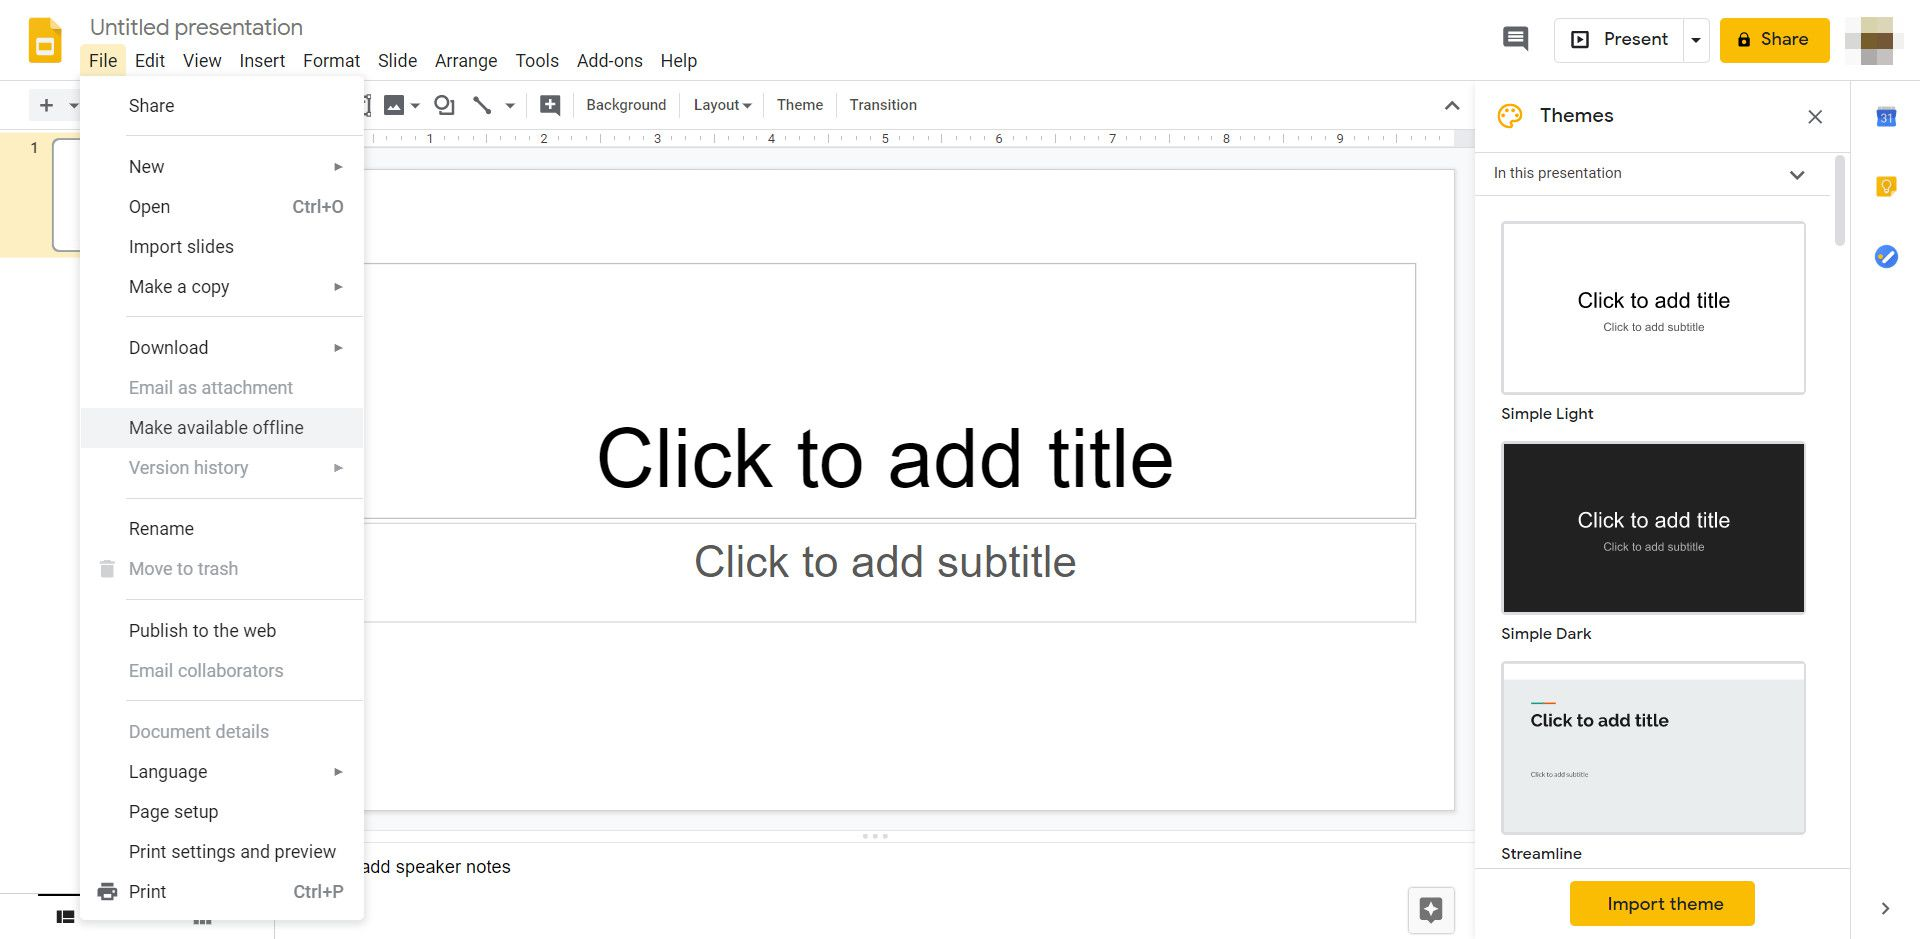 Although Google Slides is cloud-based, you can work on a project offline